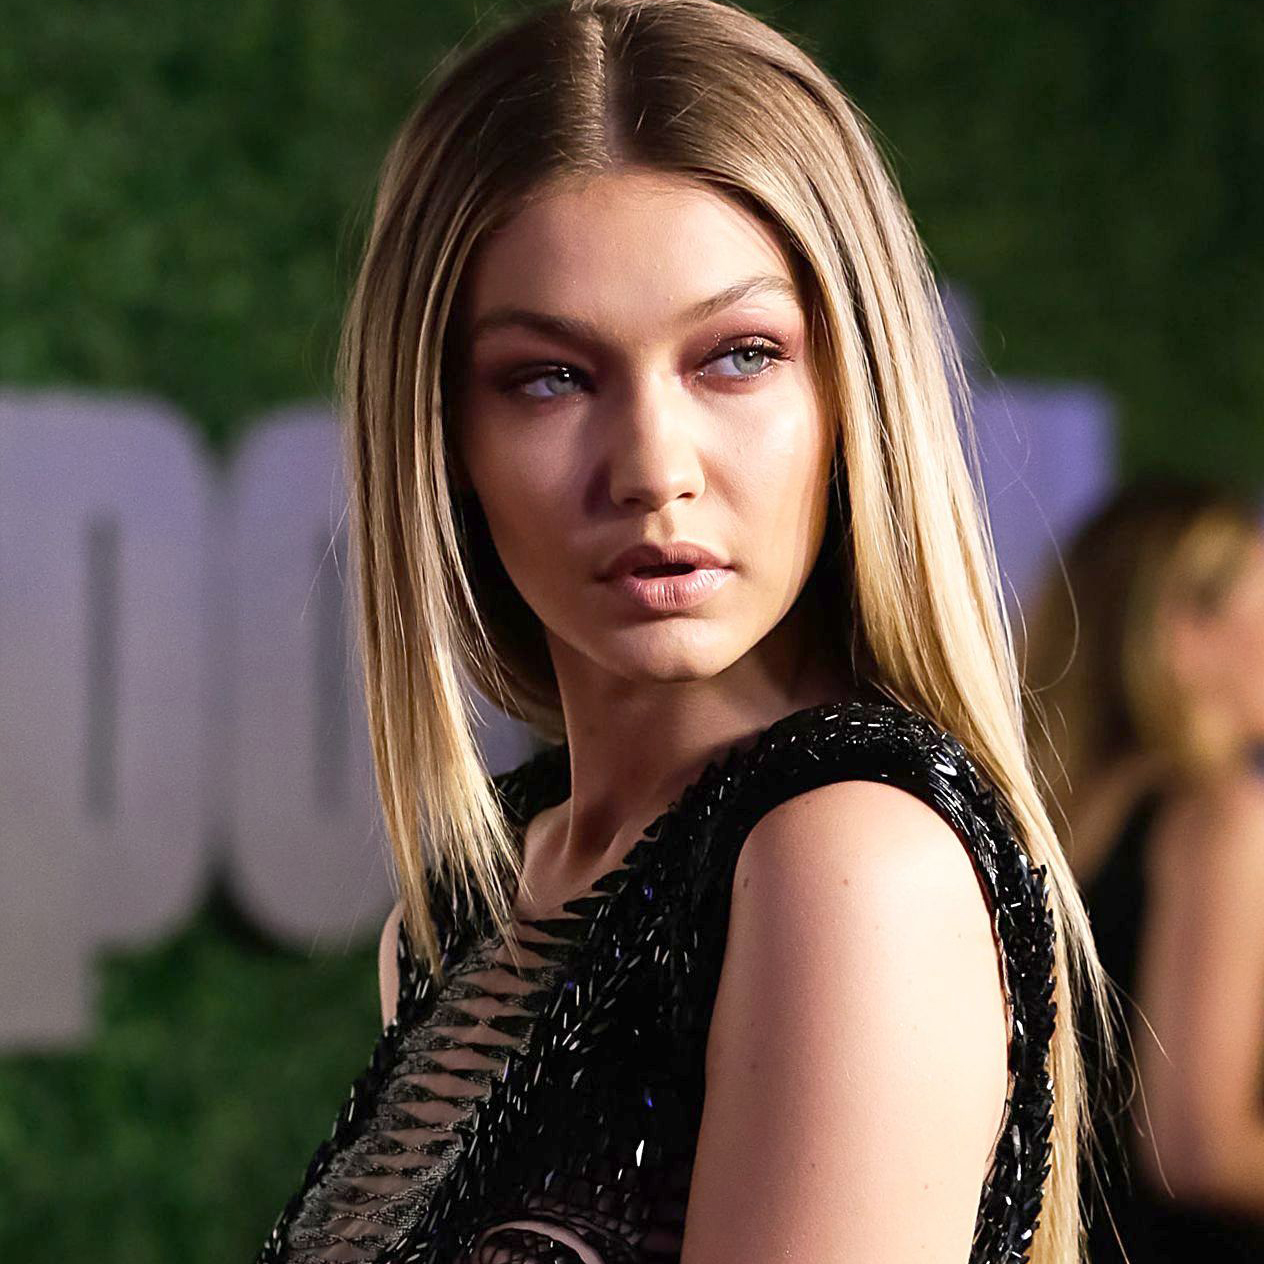 Gigi Hadid On Lip Sync Battle Video: Gigi Hadid's Lip Sync Battle Performance Features The